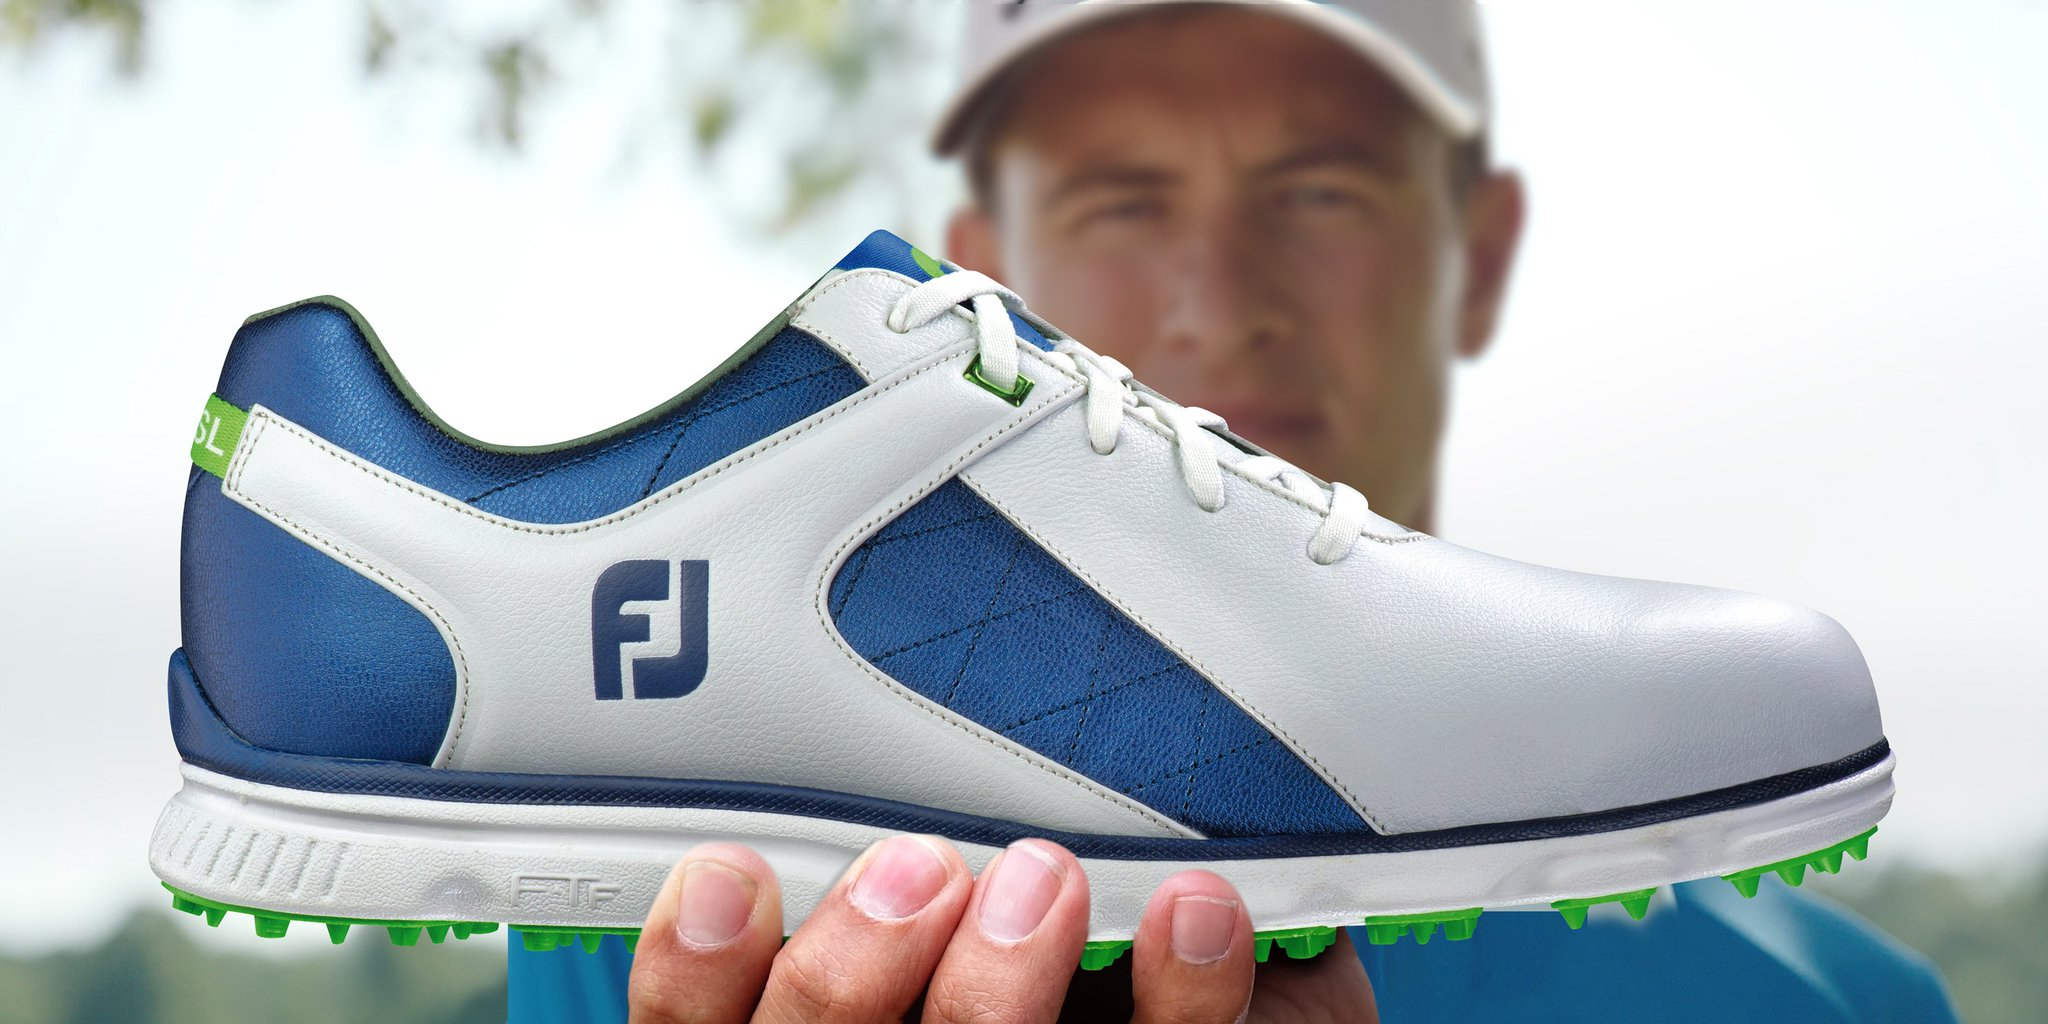 Footjoy Canada On Twitter Introducing A Spikeless Golf Shoe Pro Sl By Footjoy The Spikeless Golf Shoe The Pros Play Like This Guy